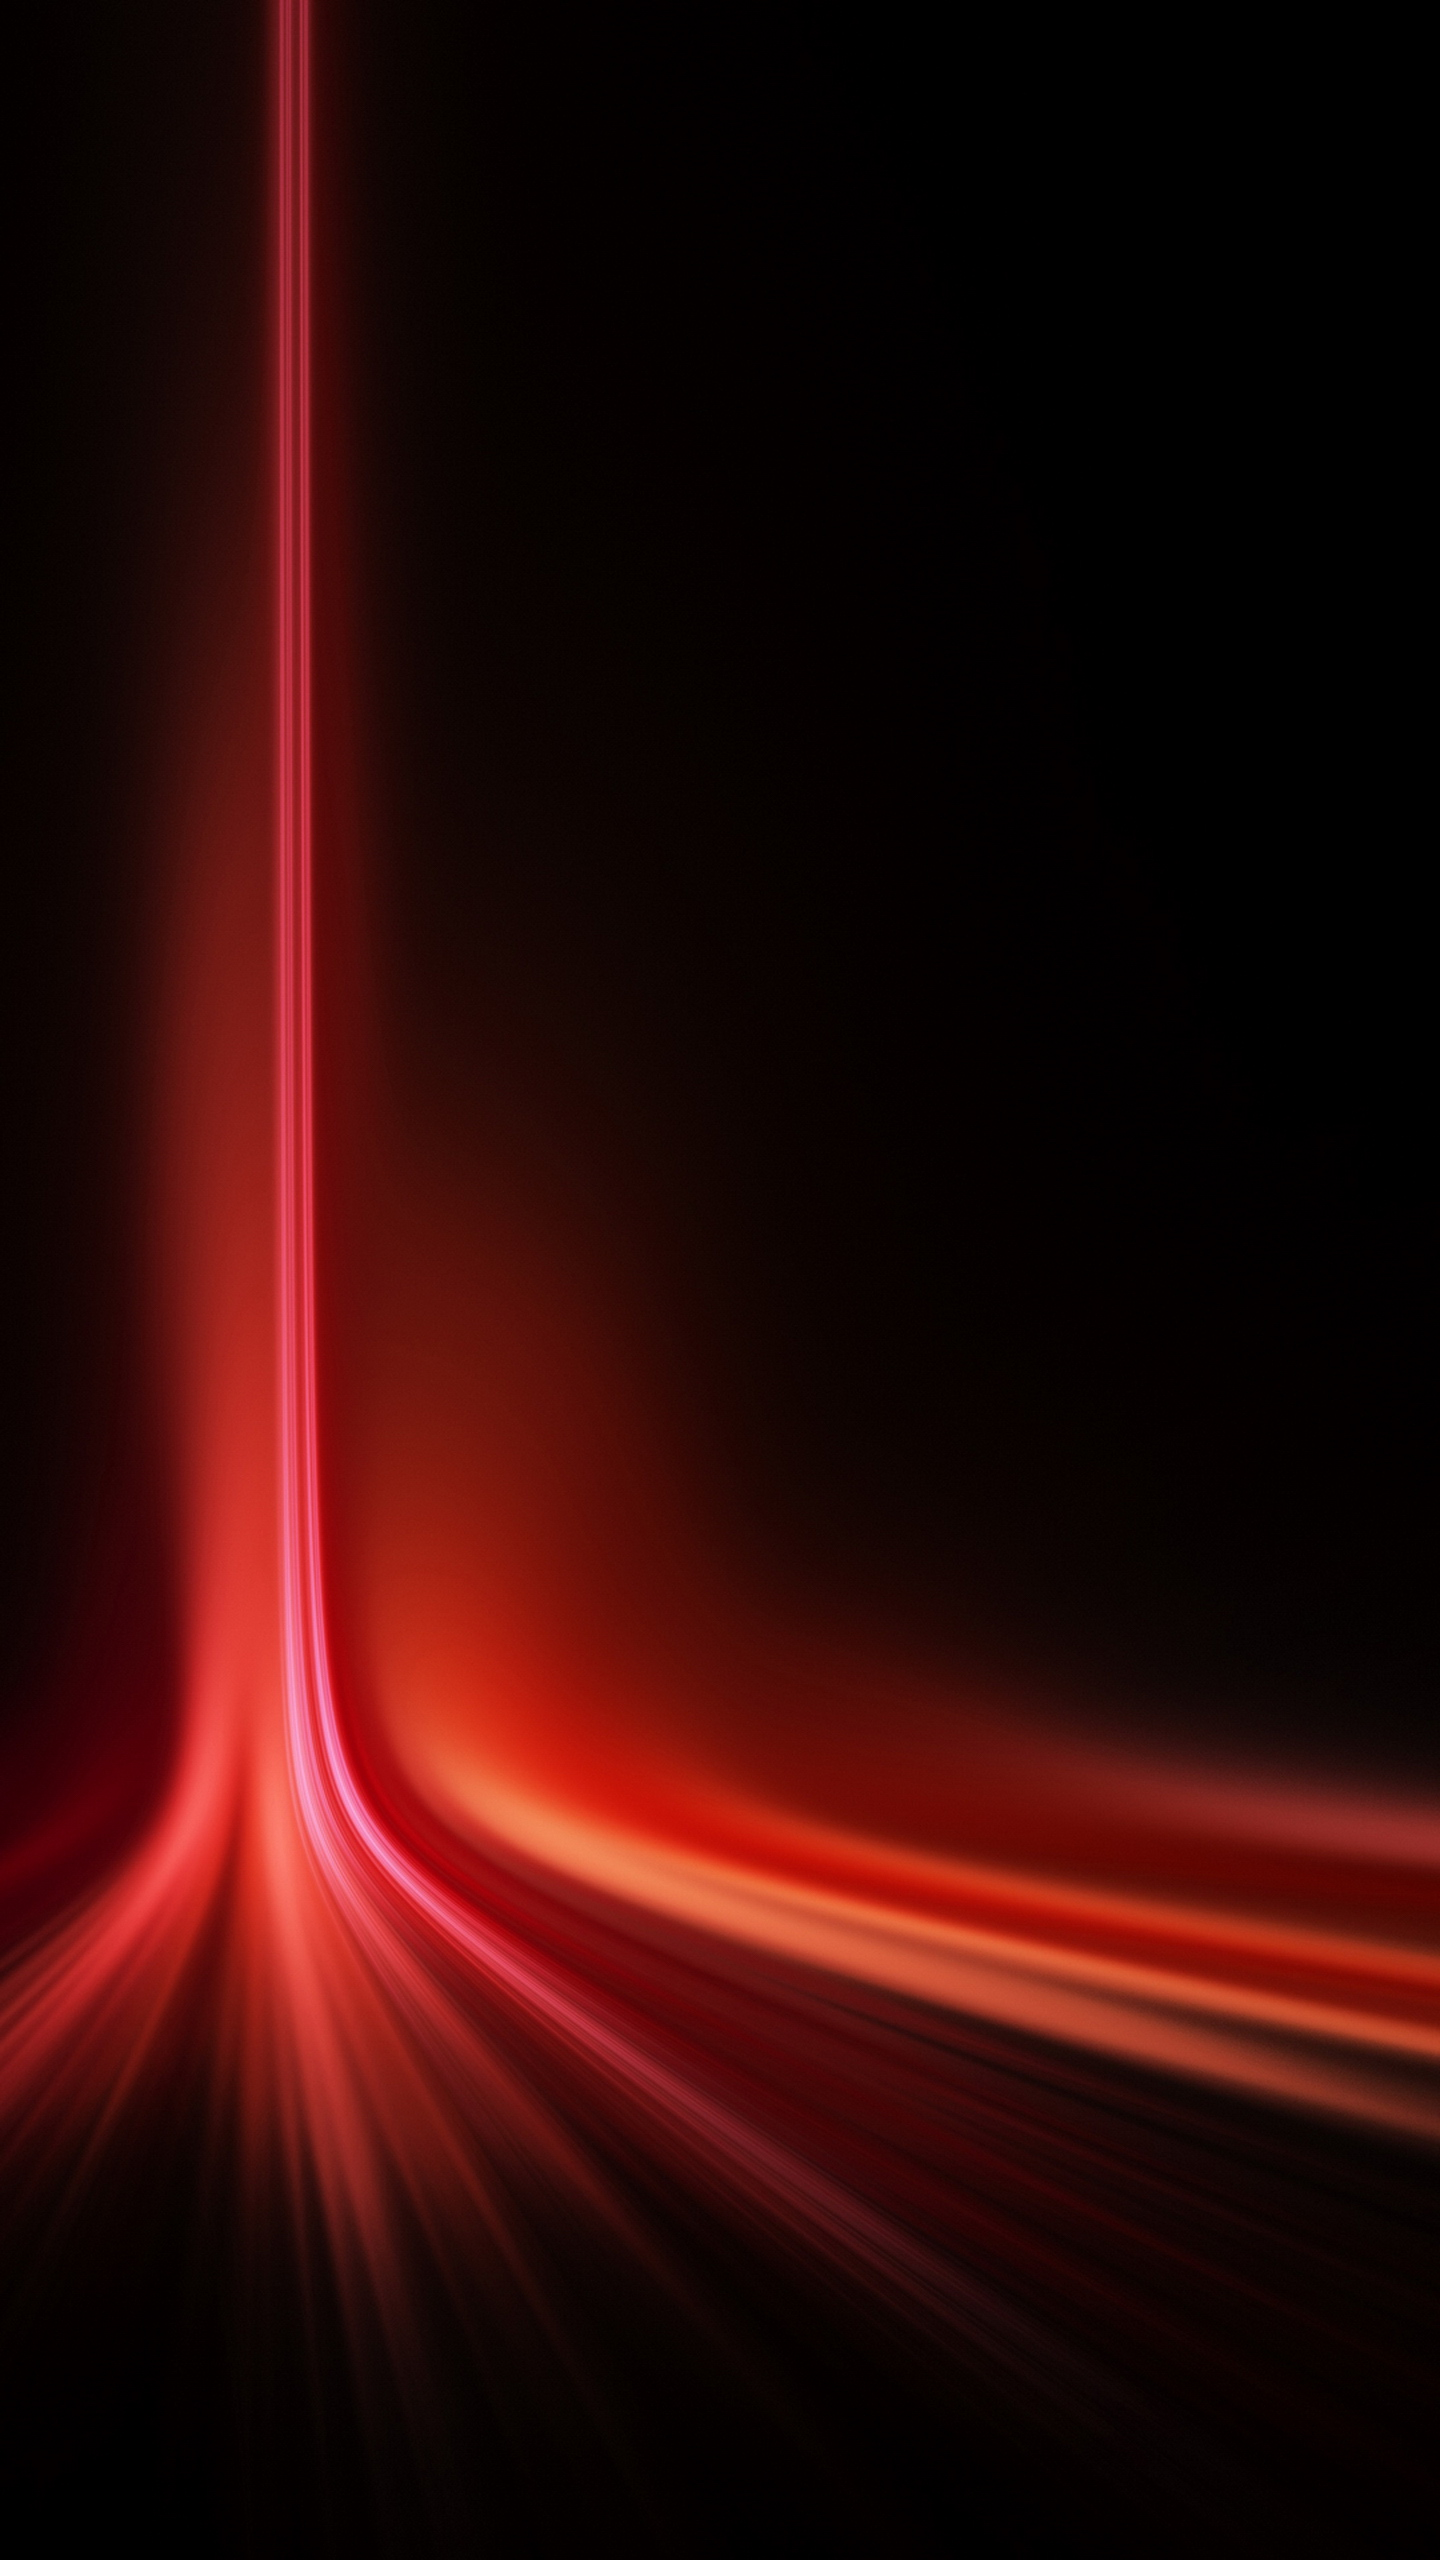 Vertical Red Laser Light Spread Galaxy Note 4 Wallpaper Quad HD 1440x2560